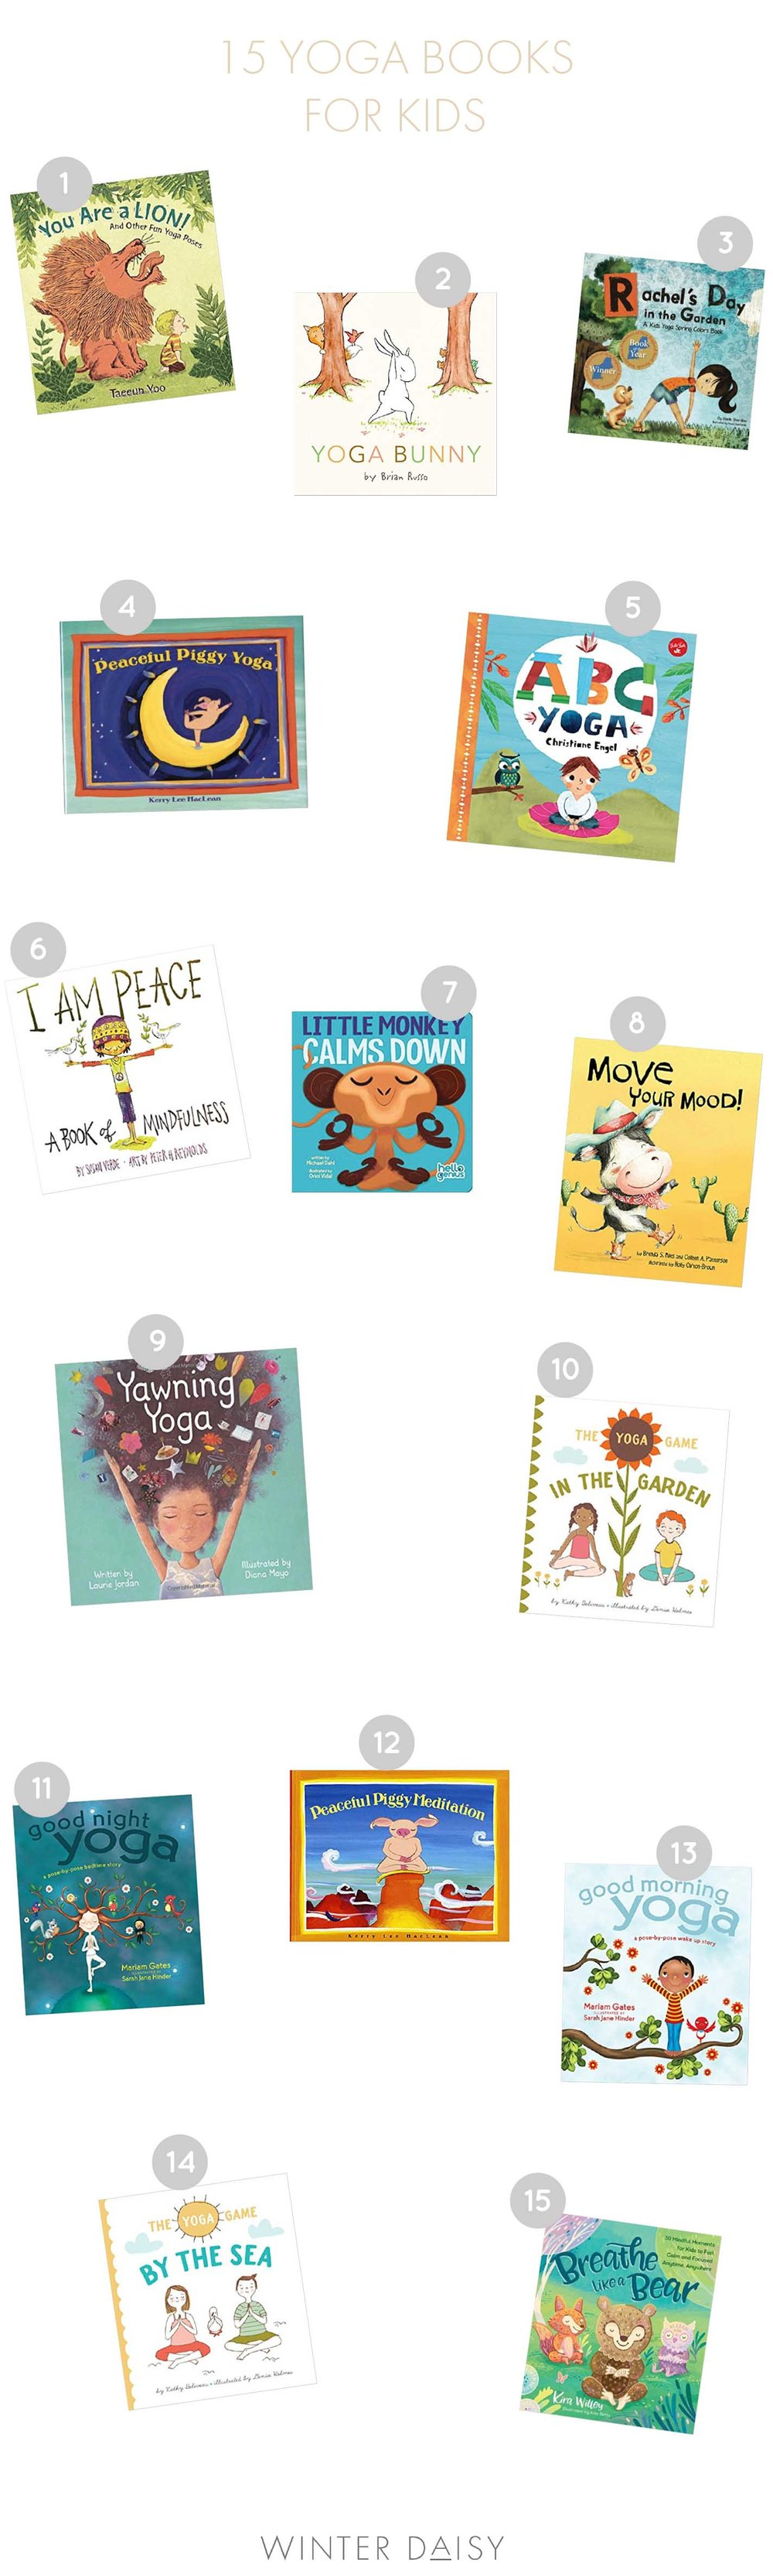 15 yoga books for kids